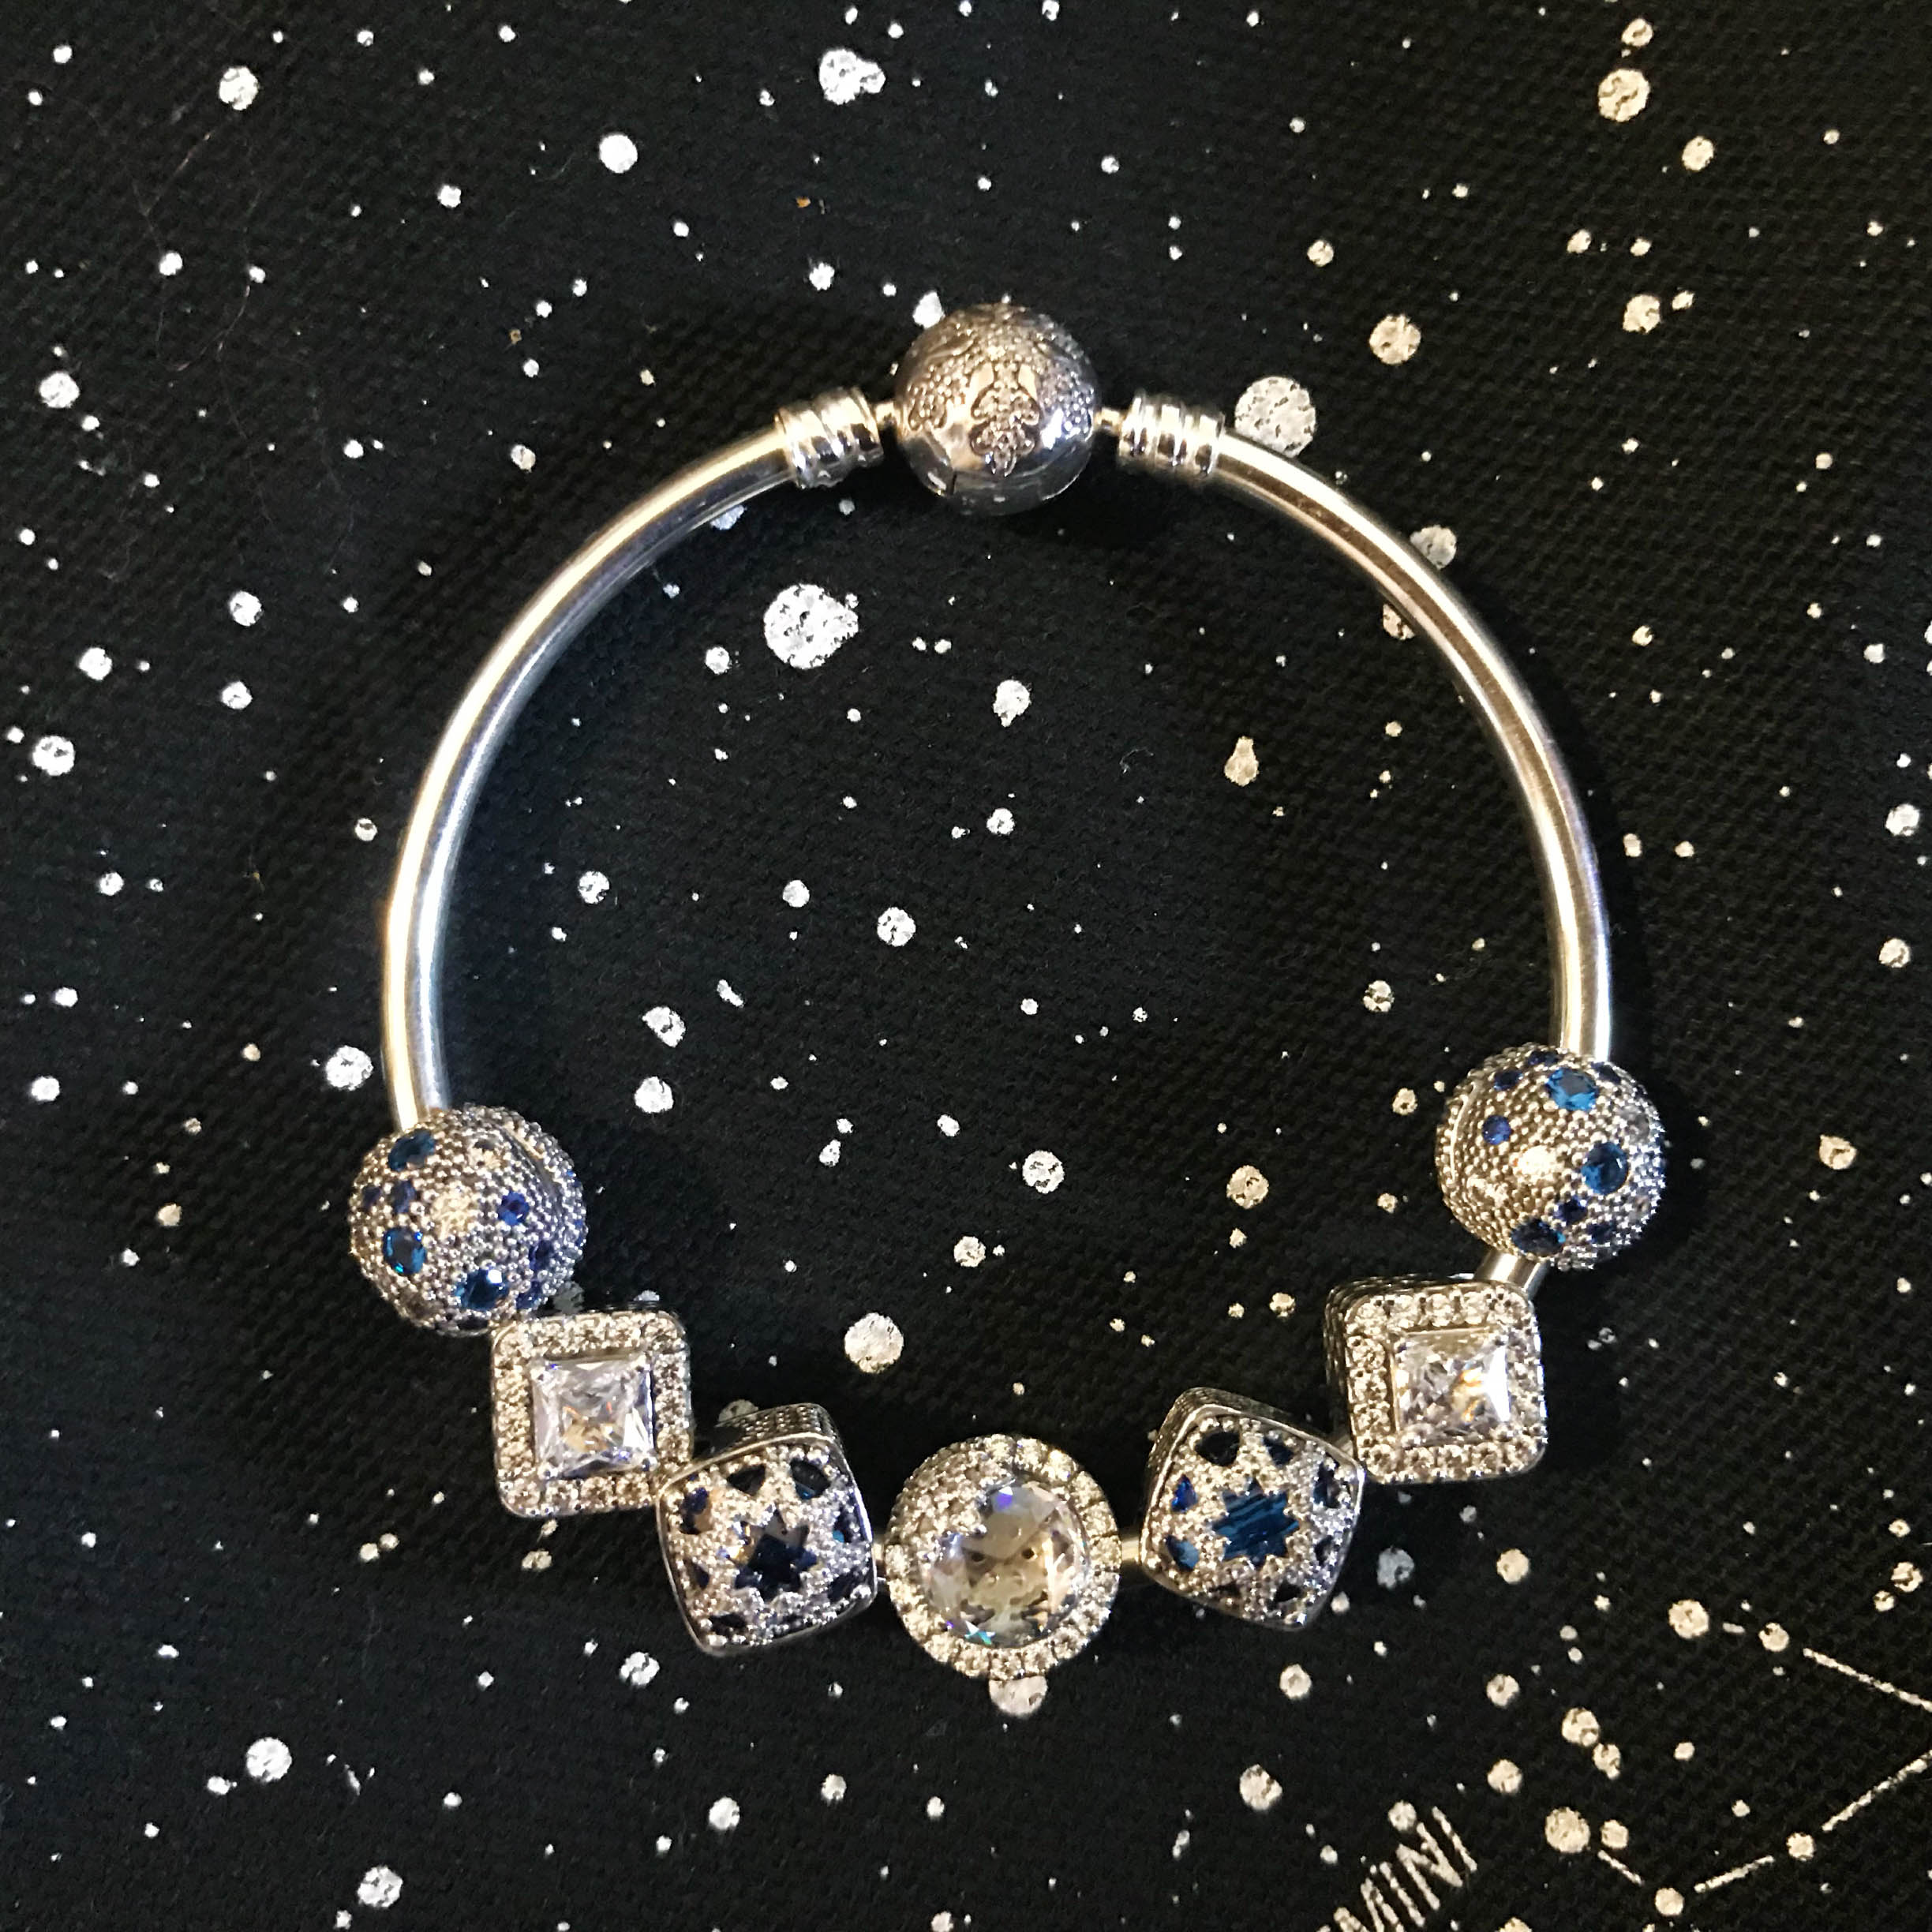 pandora holiday the glacial beauty charm 90 is another gorgeous addition its diamond shape works well with some of the geometric charms released in